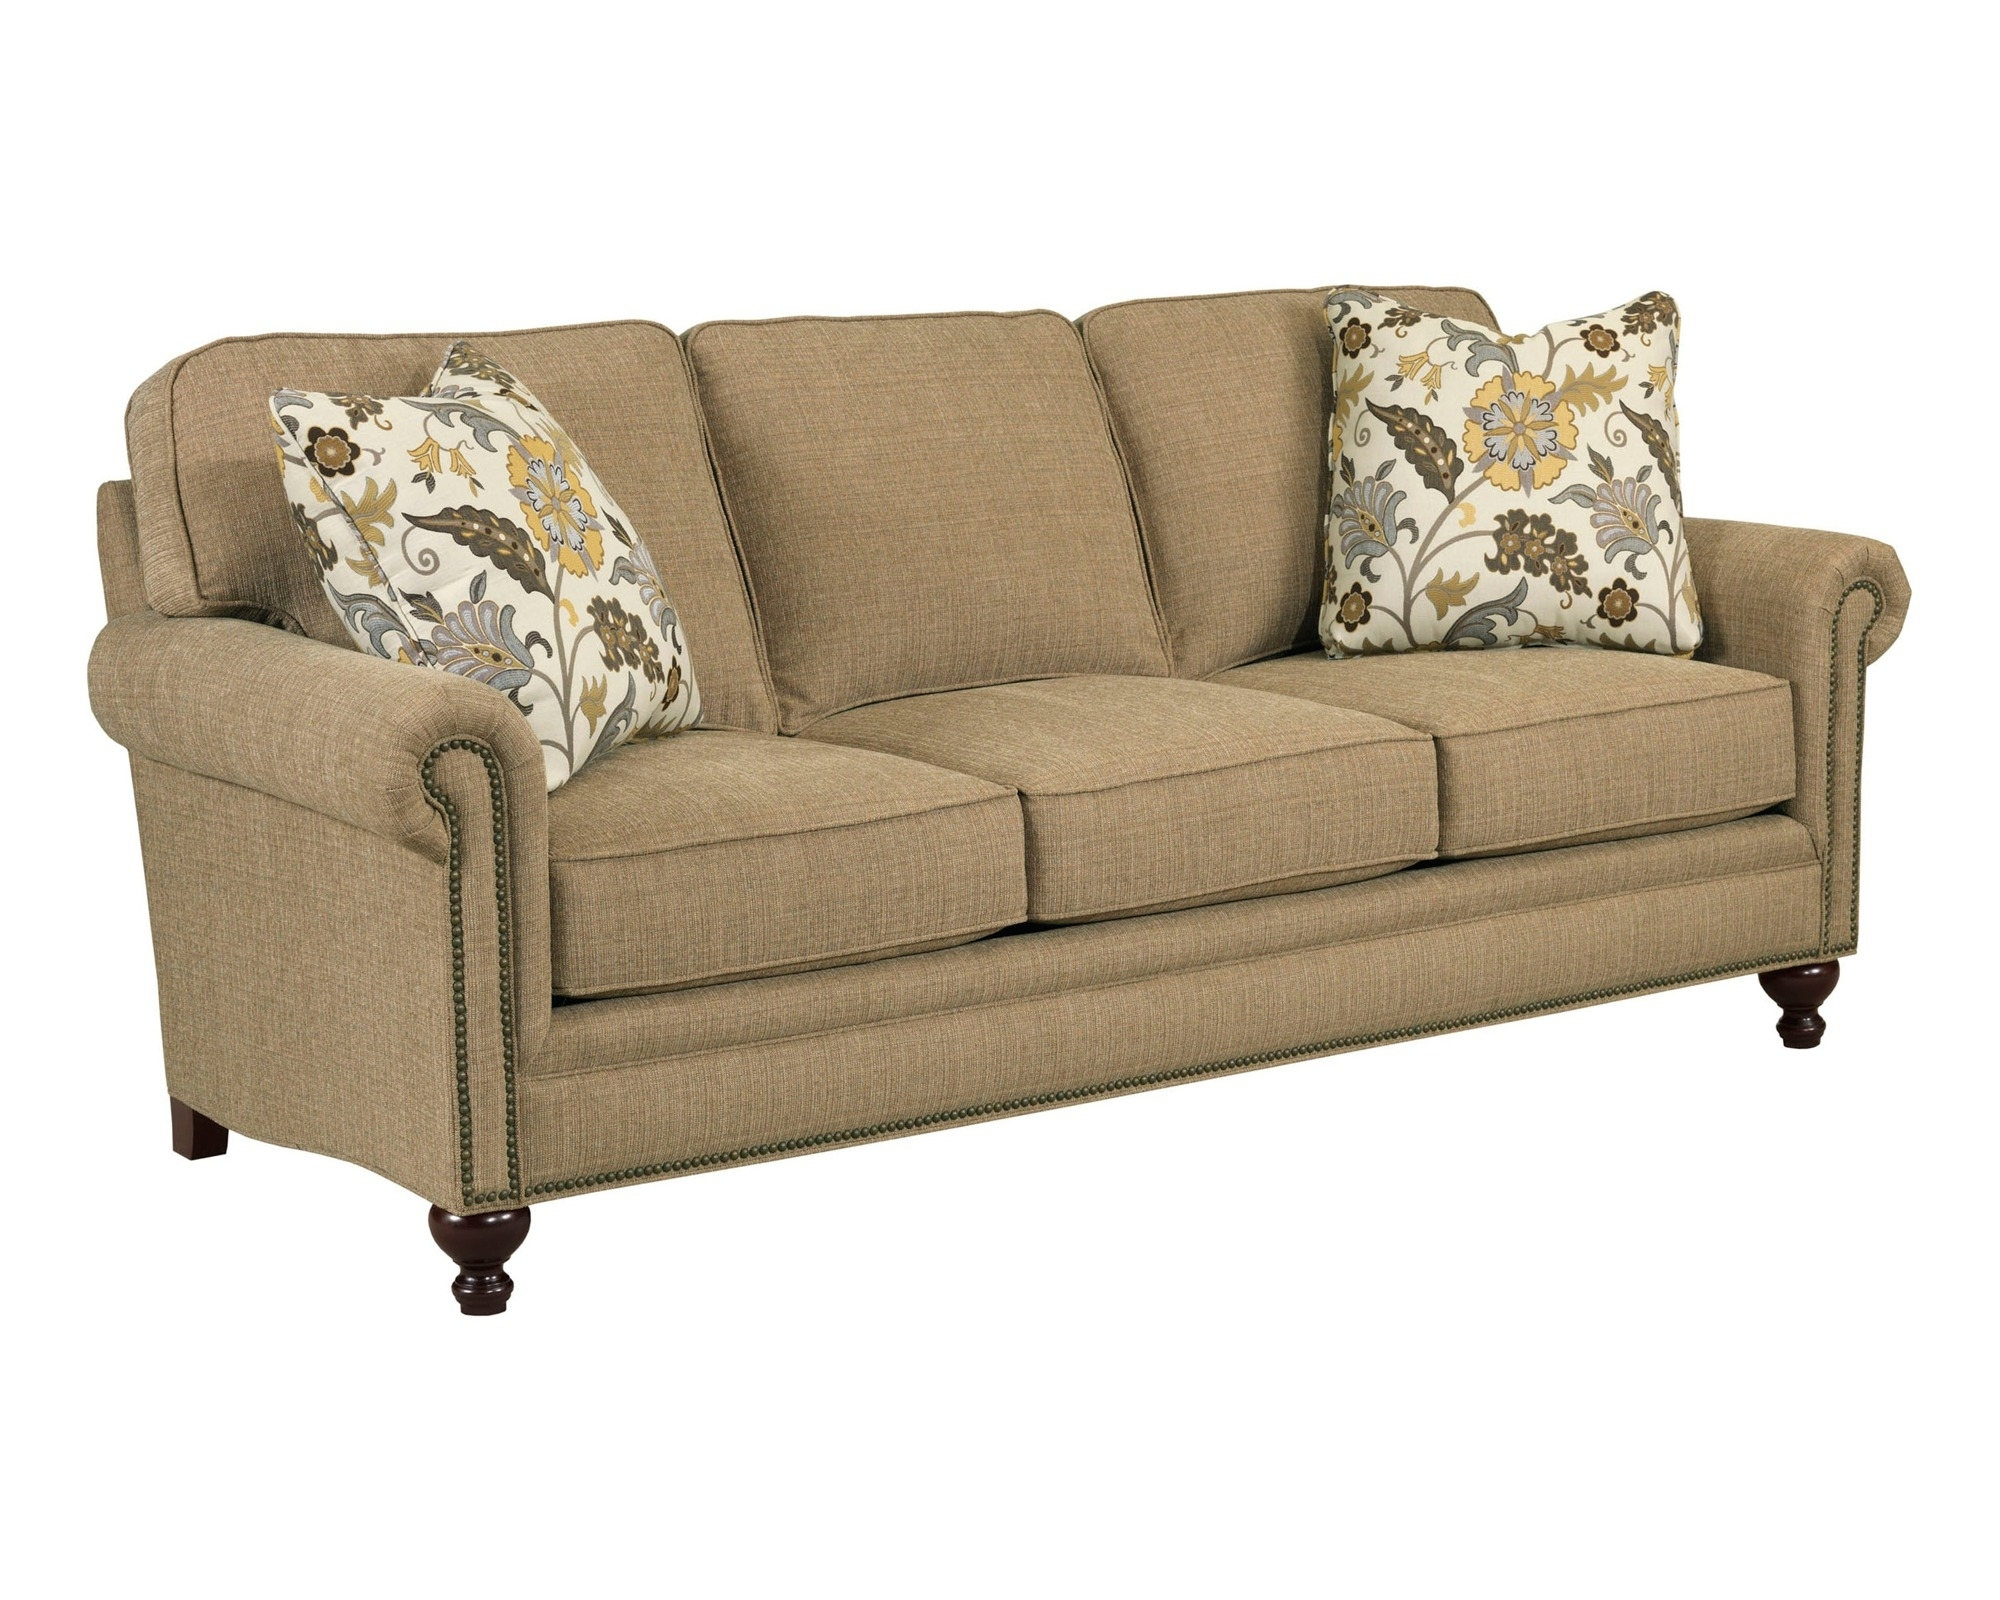 Sofa Ideas: Broyhill Larissa Sofas (Explore #11 Of 20 Photos) throughout Broyhill Larissa Sofas (Image 11 of 15)